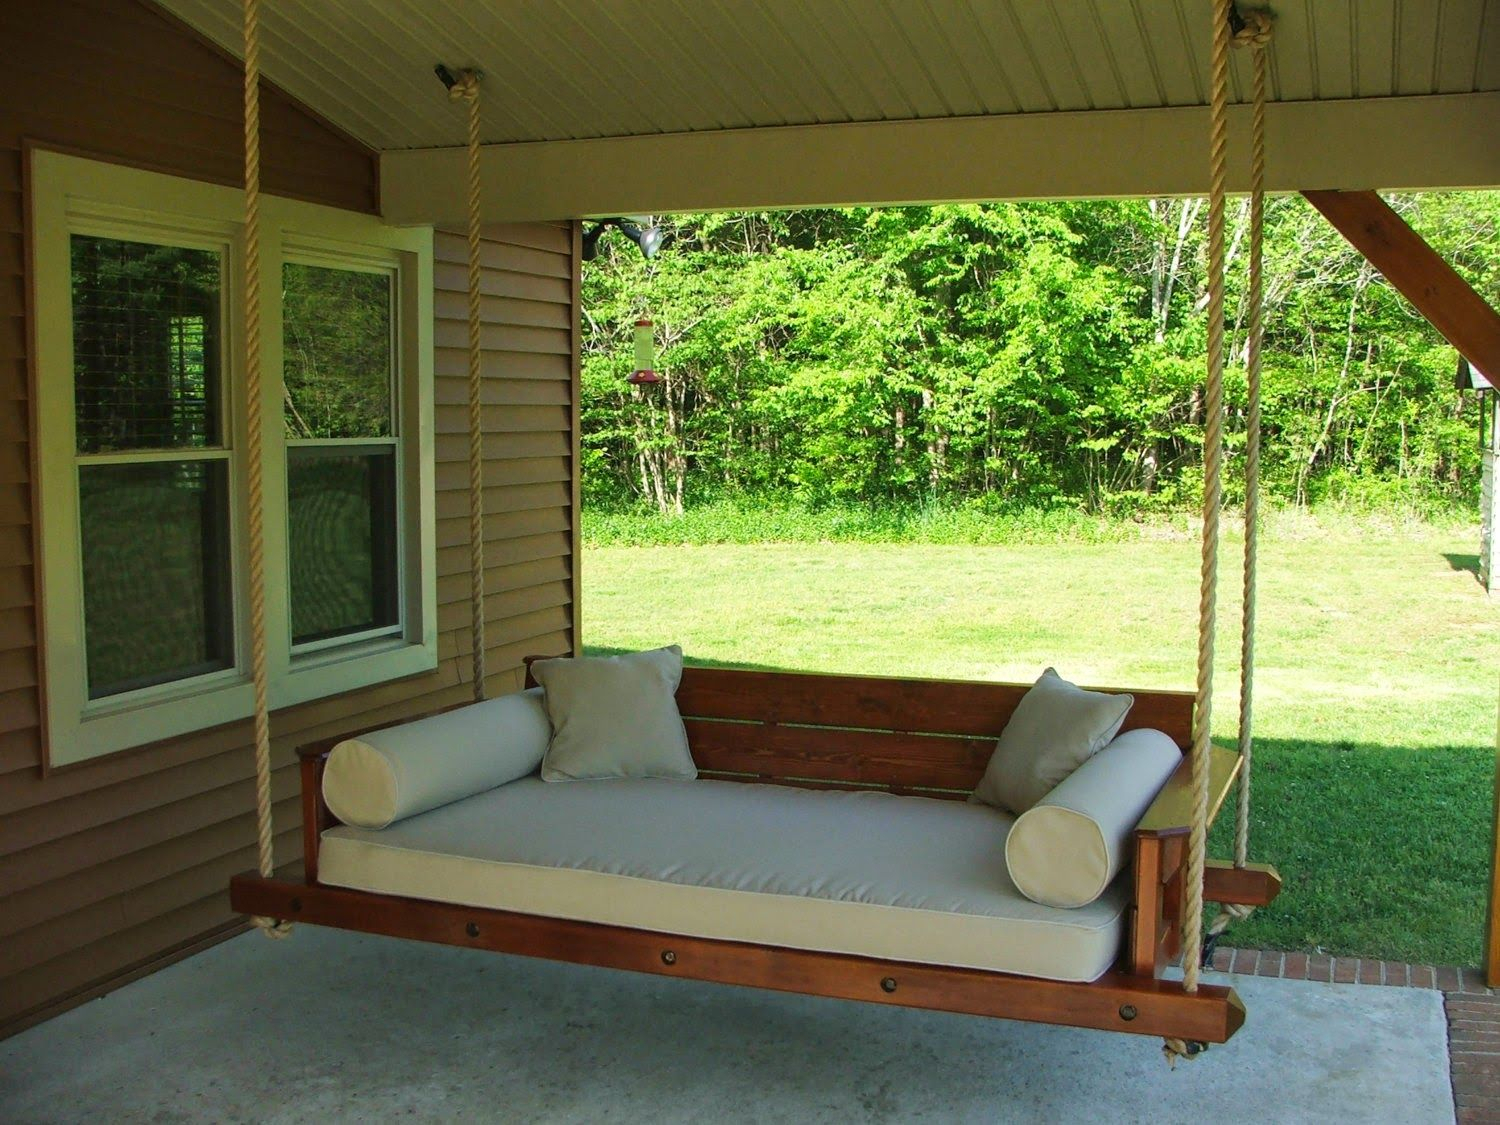 Outdoor Swing Bed Plans | Porch Bed, Modern Porch Swings Within Hardwood Hanging Porch Swings With Stand (View 23 of 25)